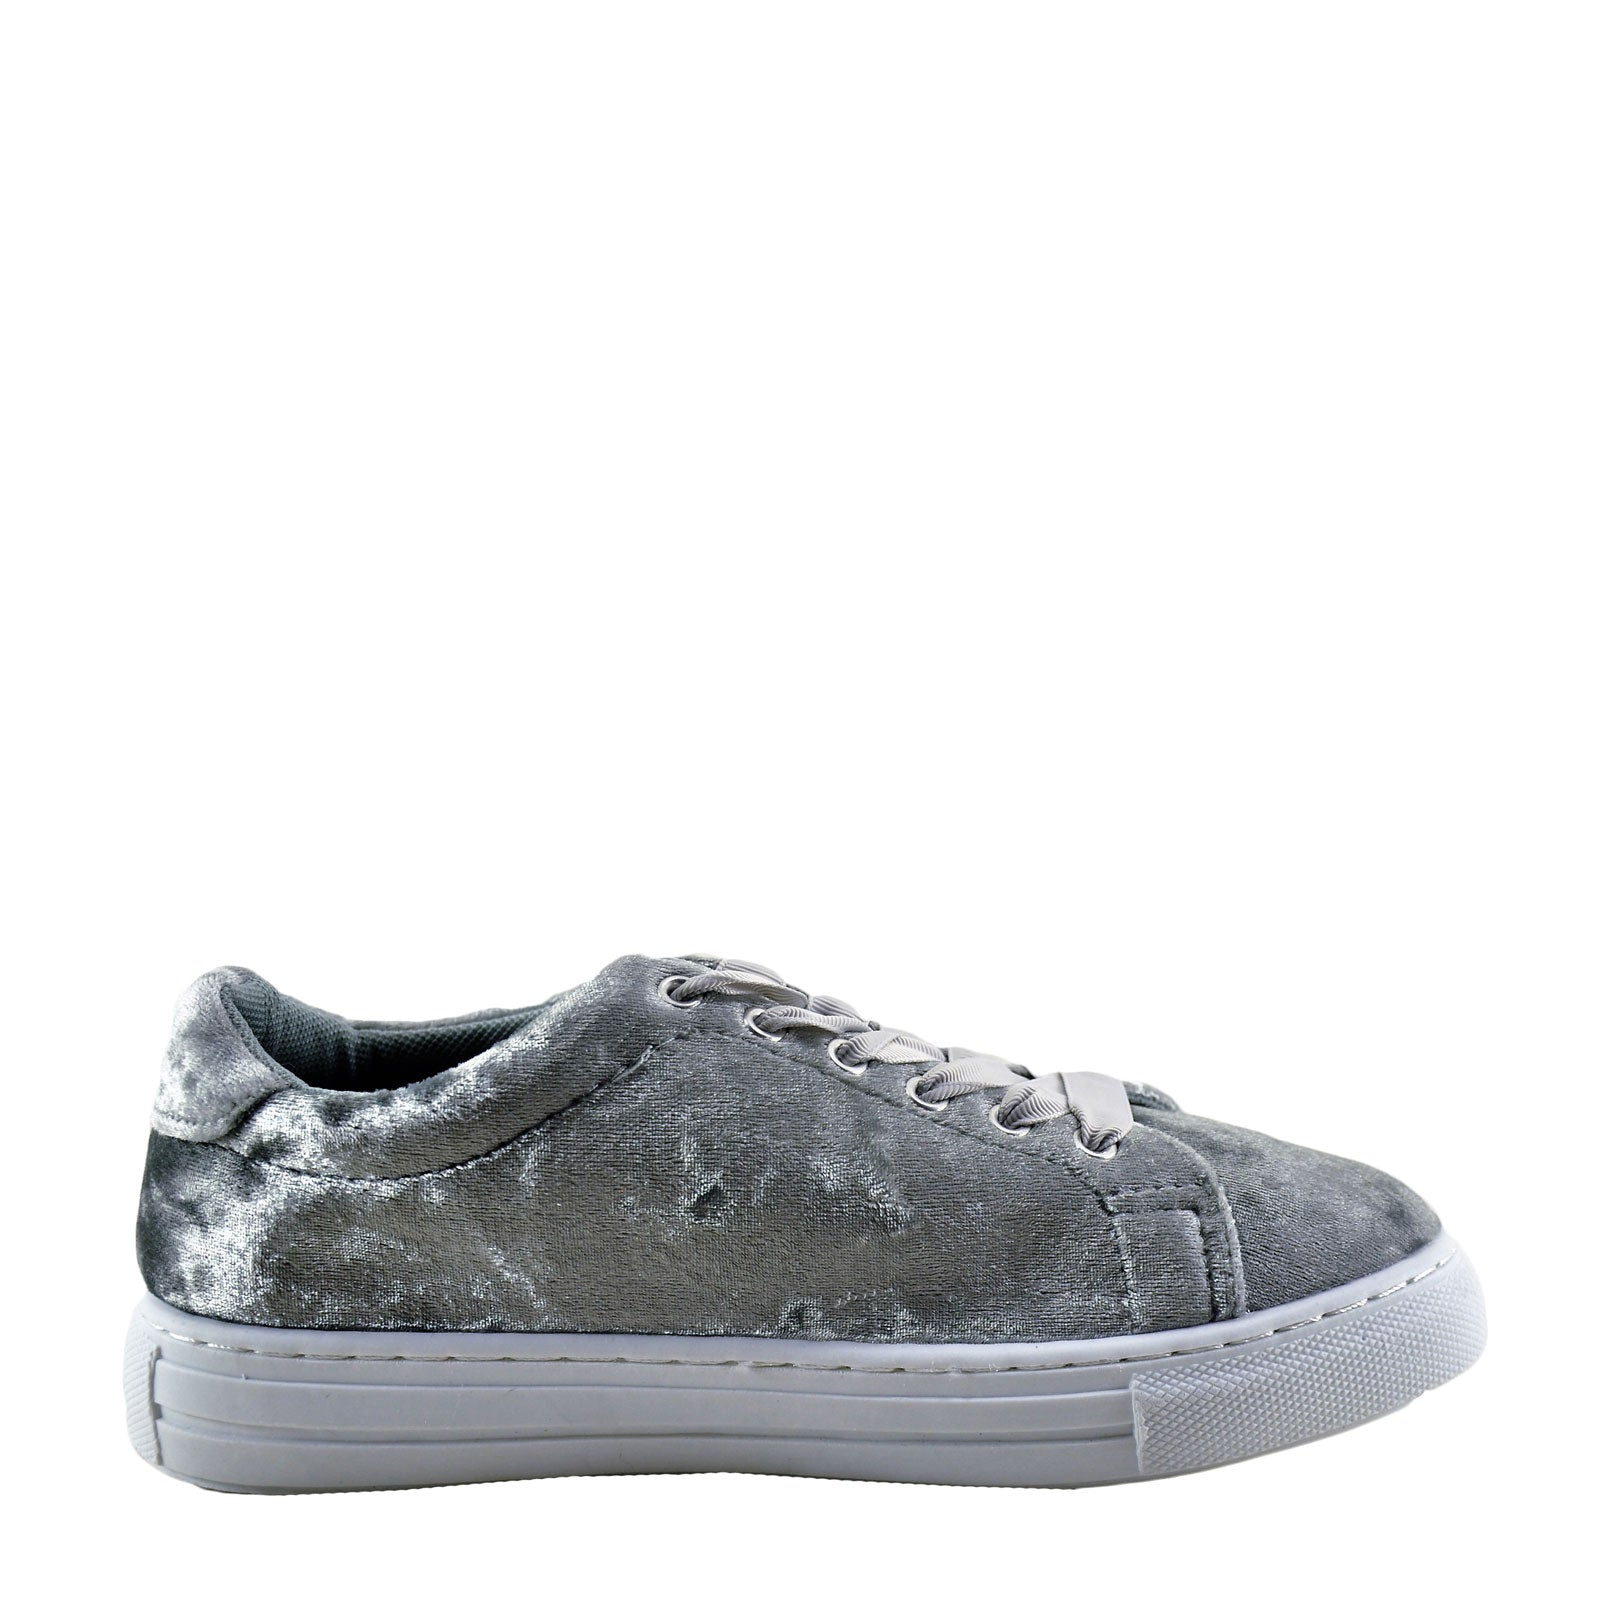 Qupid Reba 161C -Grey Crush Velvet